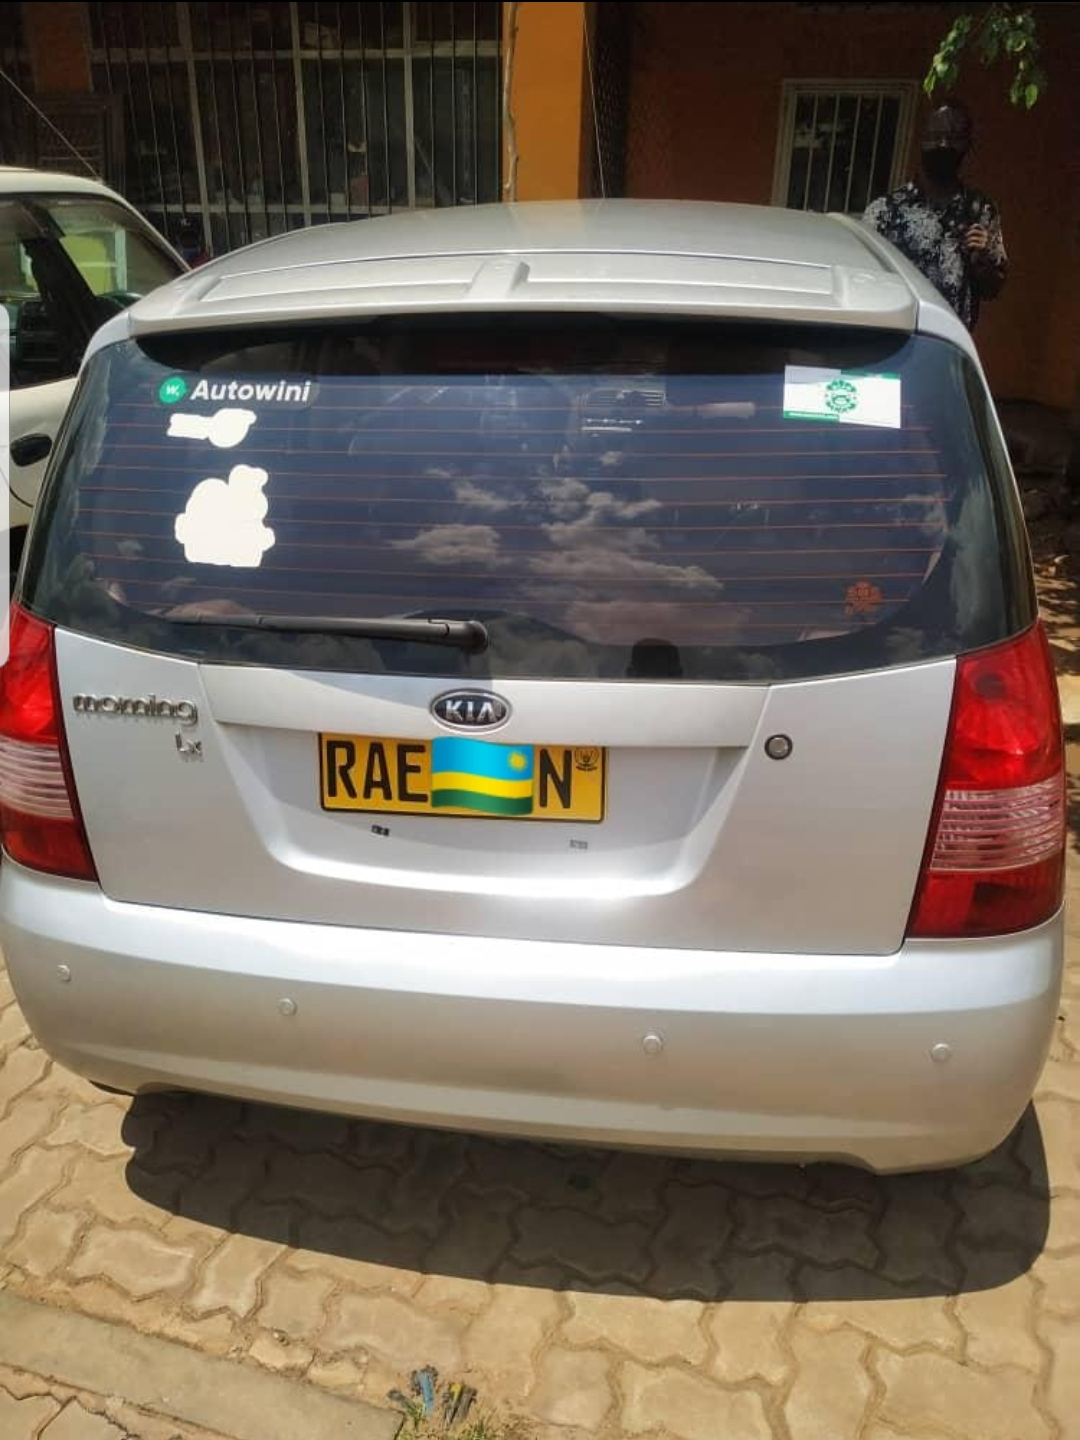 Car for Sale, KIA MORNING, Year: 2005, Price; 4.300,000frw